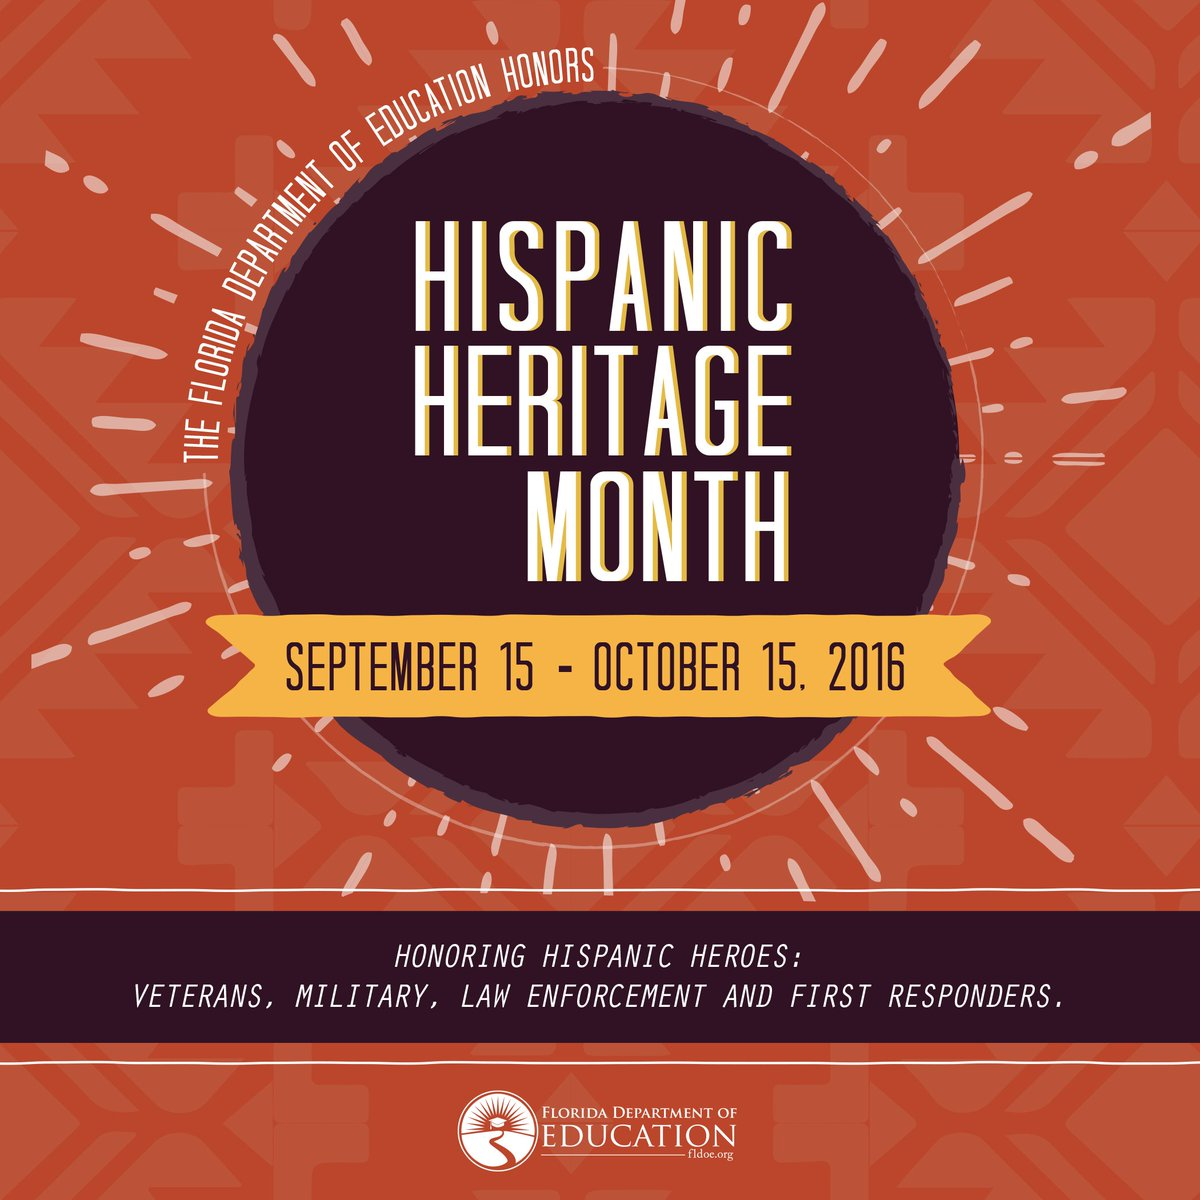 From Sept. 15 to Oct. 15 join us in honoring & celebrating all of our hispanic heroes! #HispanicHeritageMonth #FLedu https://t.co/bW3U9fOpw6